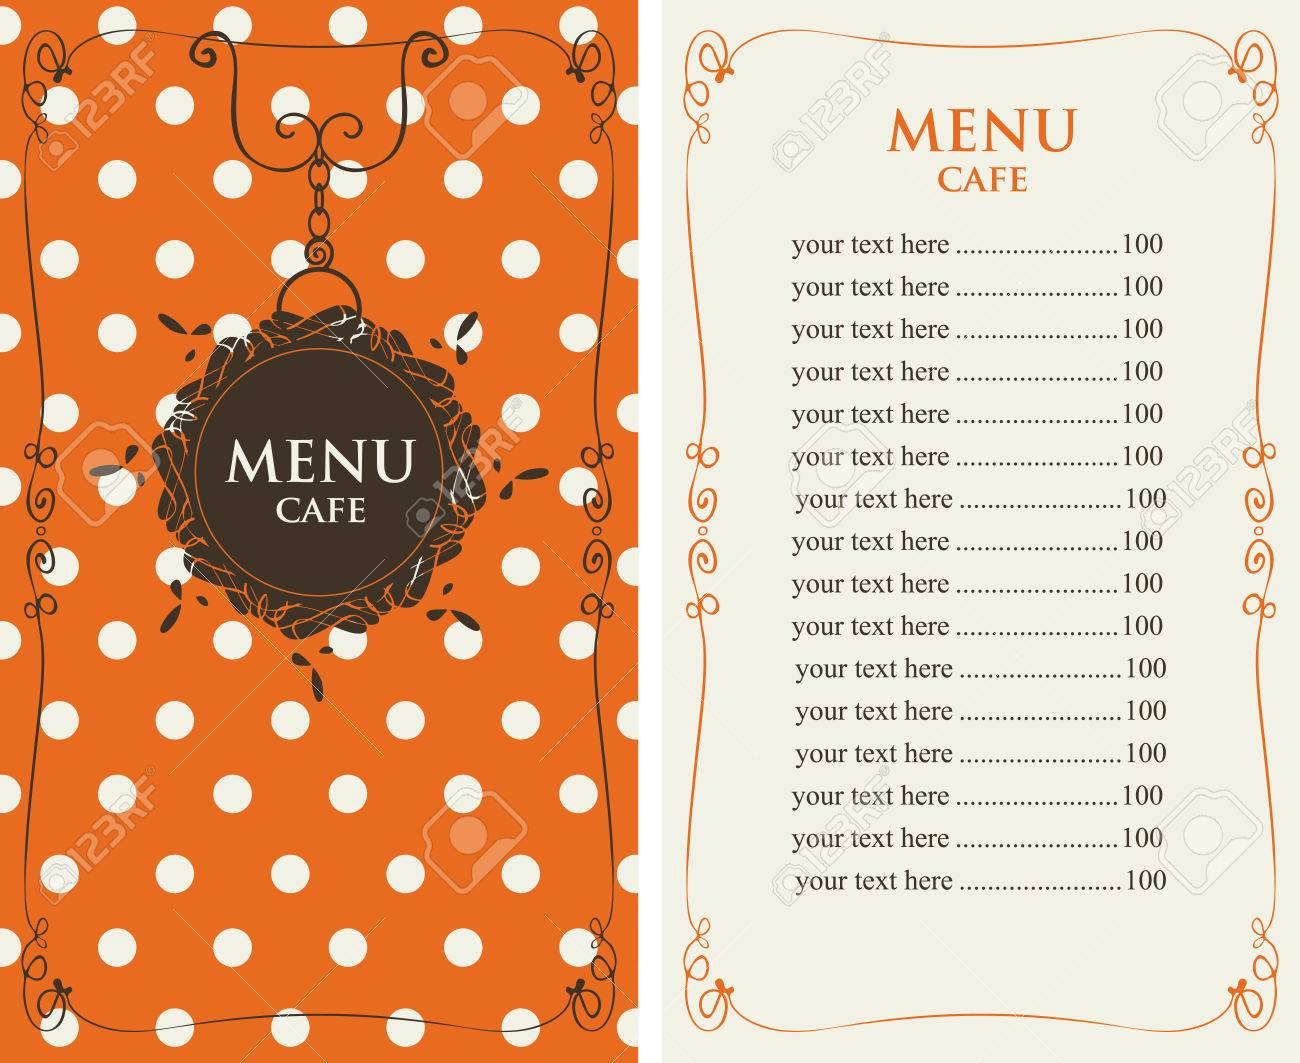 template menu for the cafe with price list on the background